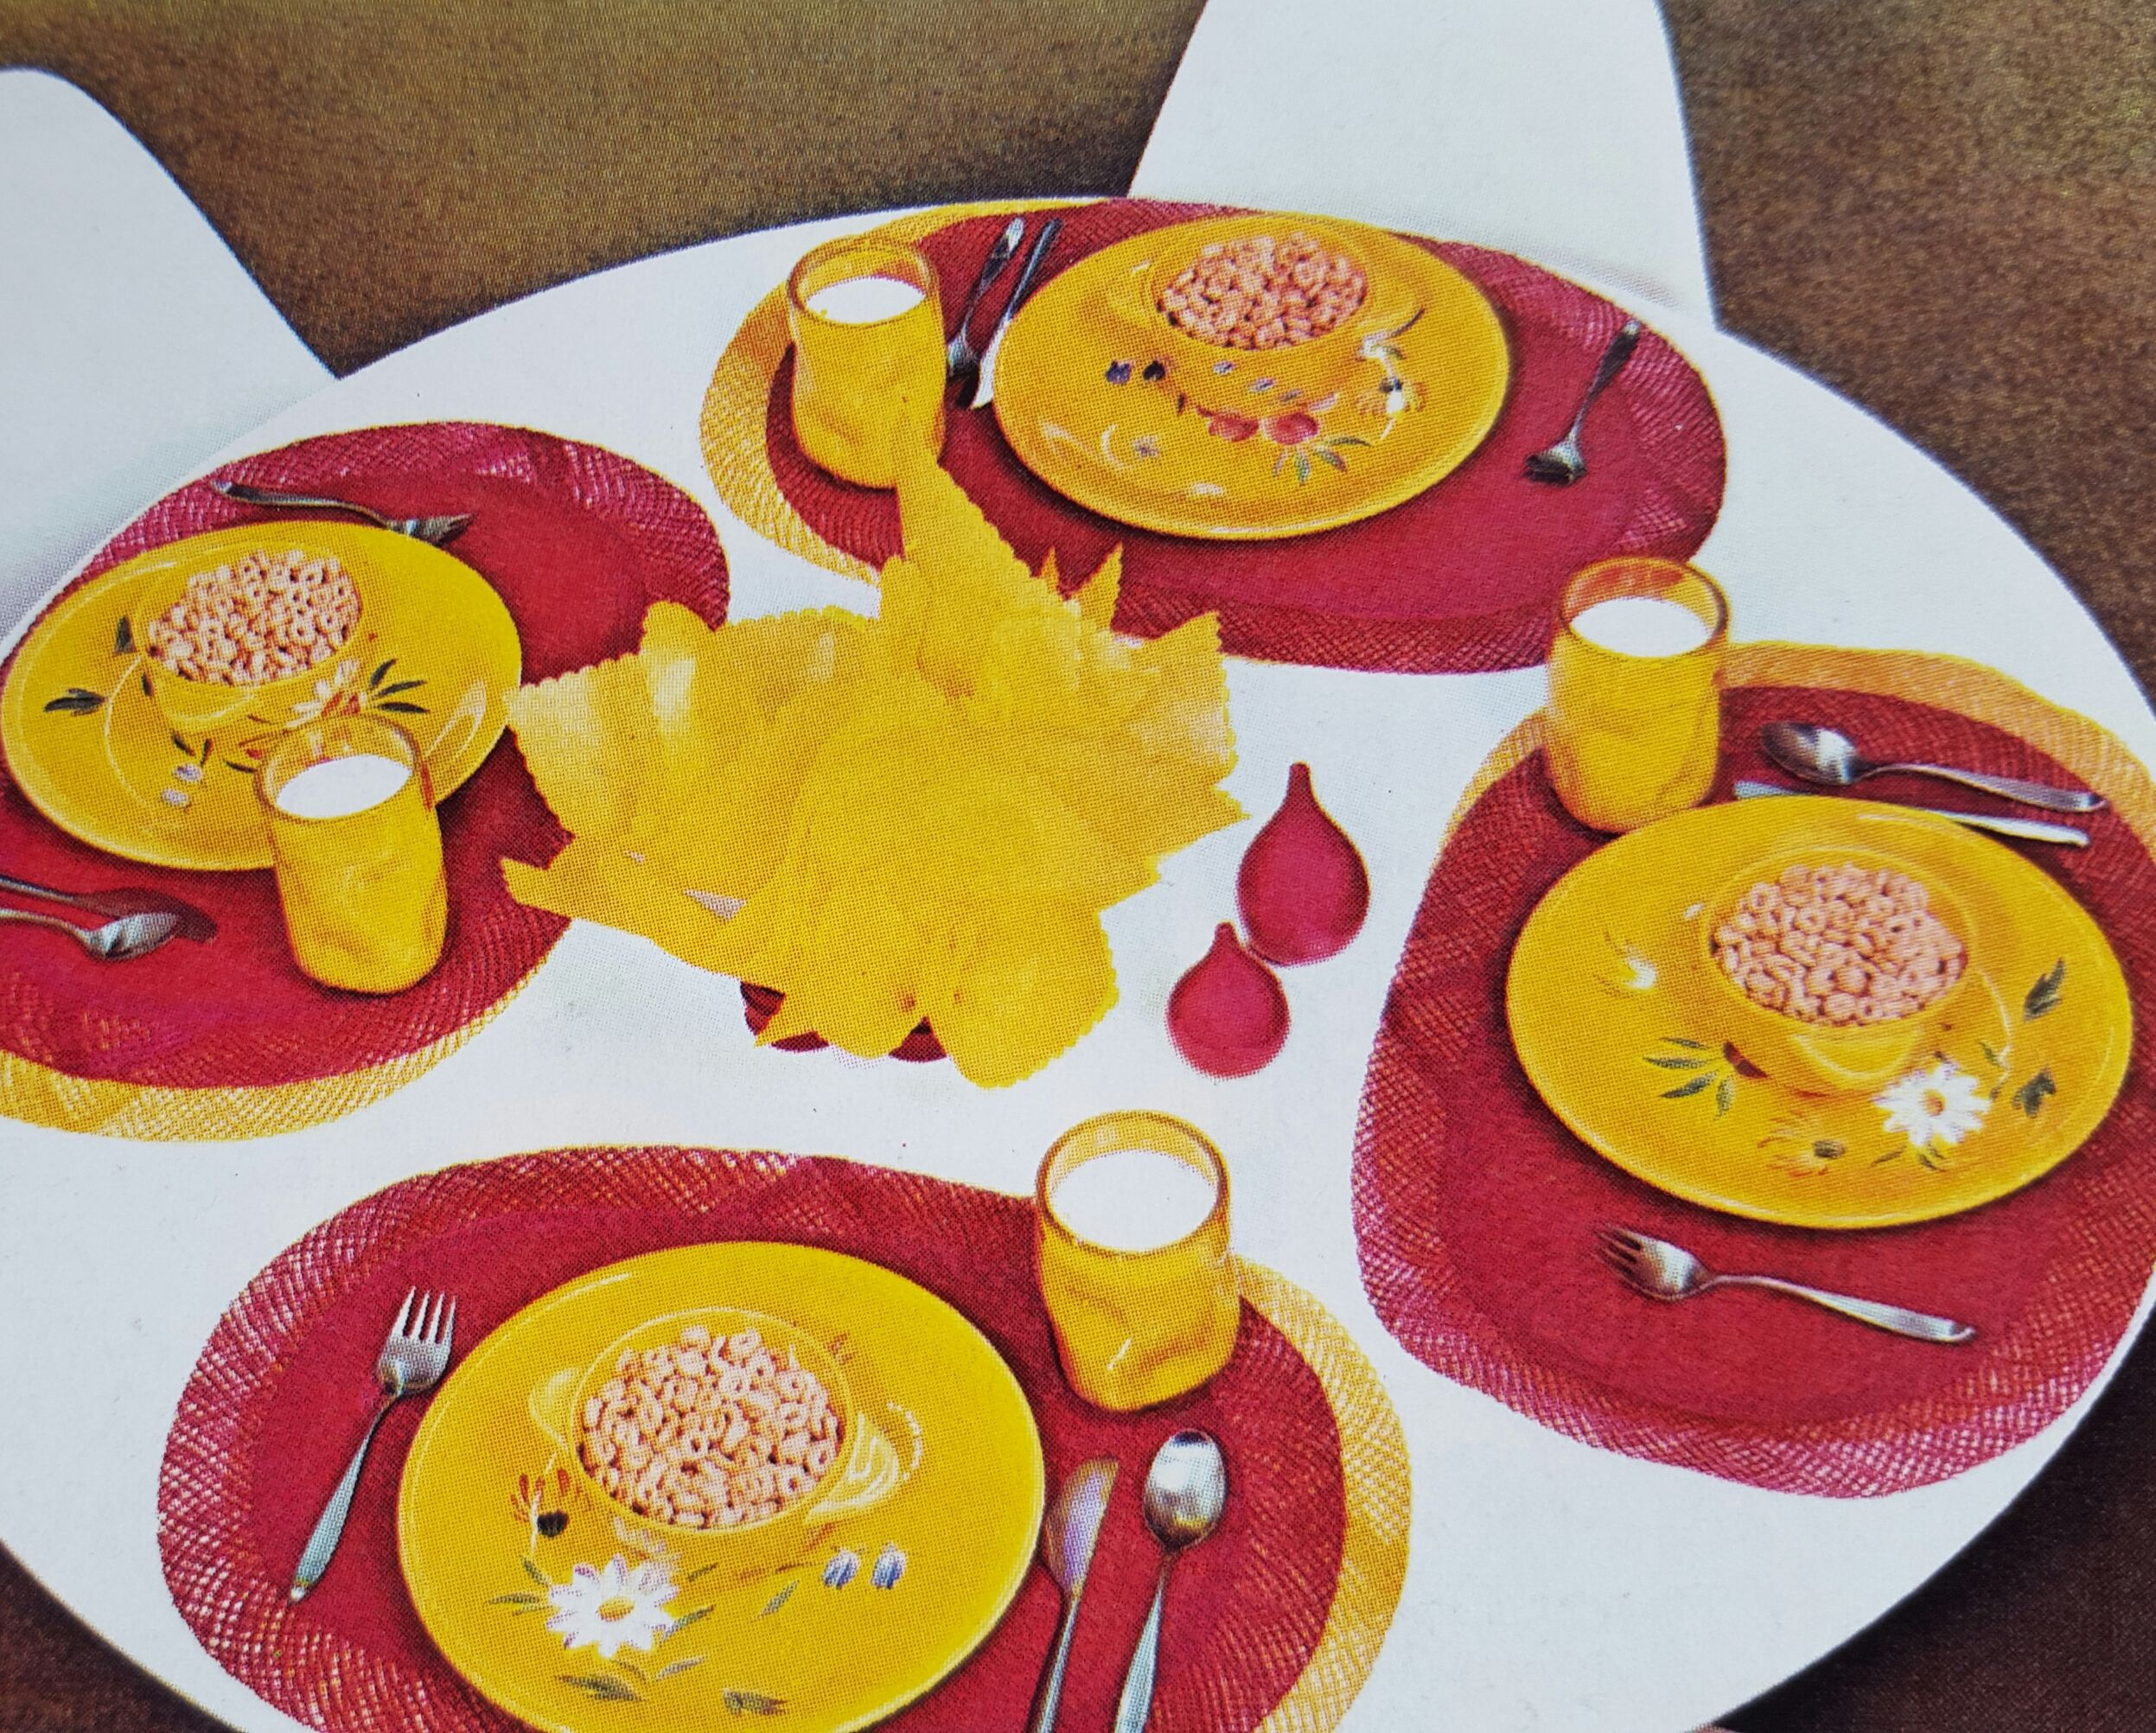 In 1969 even a cold cereal breakfast was made special by setting the table with brightly colored dishes, place-mats, and glassware!